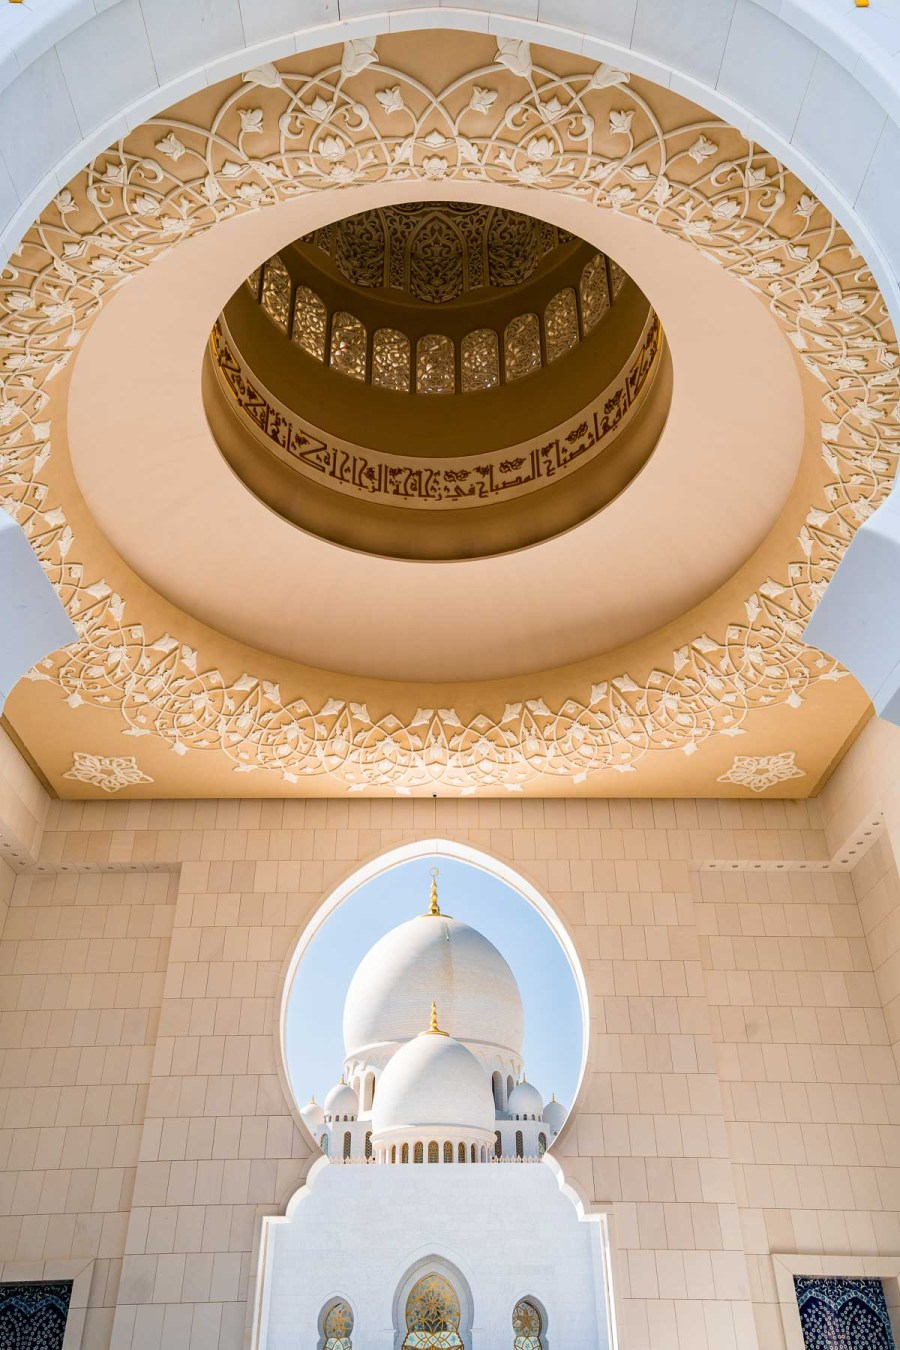 Ceiling at the entrance of Sheikh Zayed Mosque in Abu Dhabi